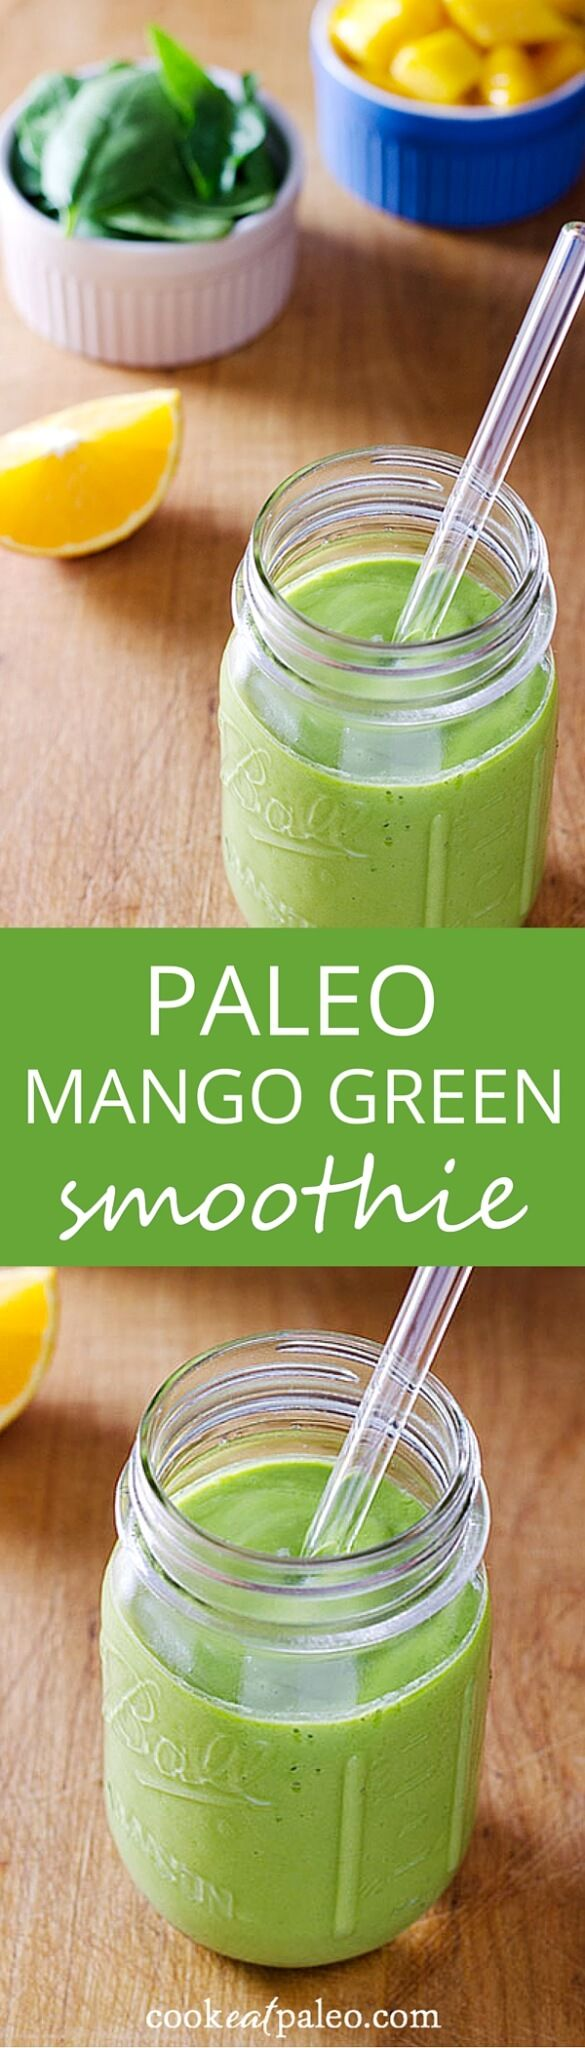 With just four ingredients, this paleo mango green smoothie recipe is like a tropical creamsicle. It's vegan, dairy-free, and sweetened only with fruit.